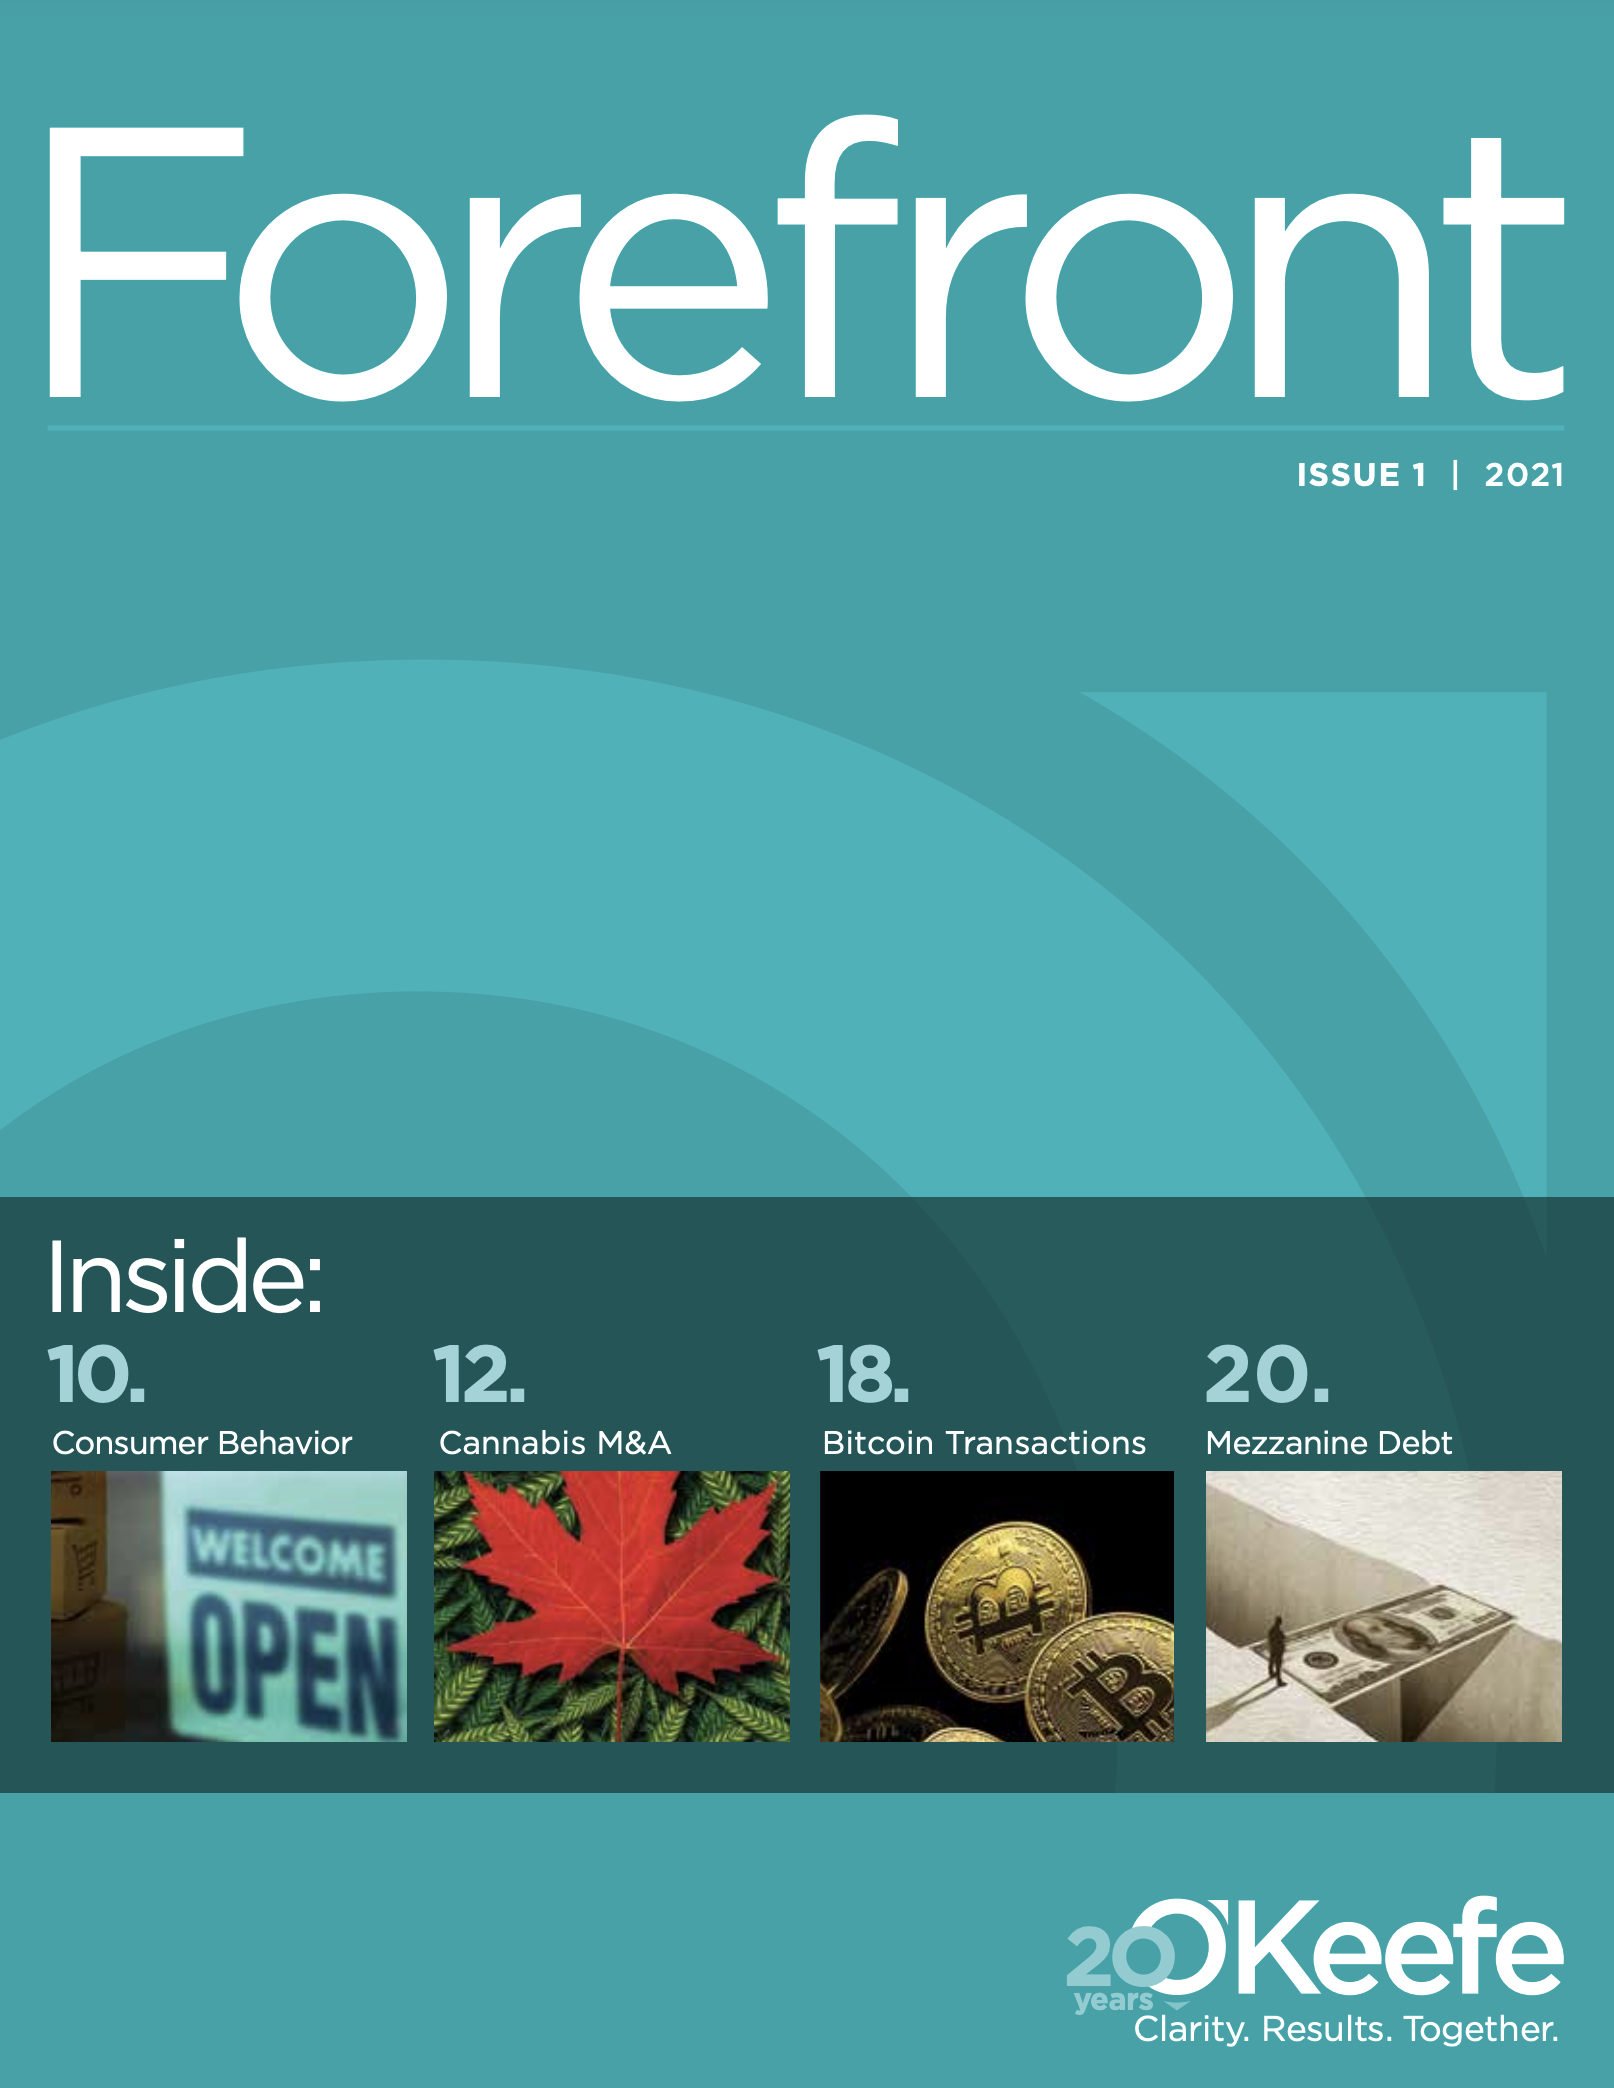 FOREFRONT 1 2021